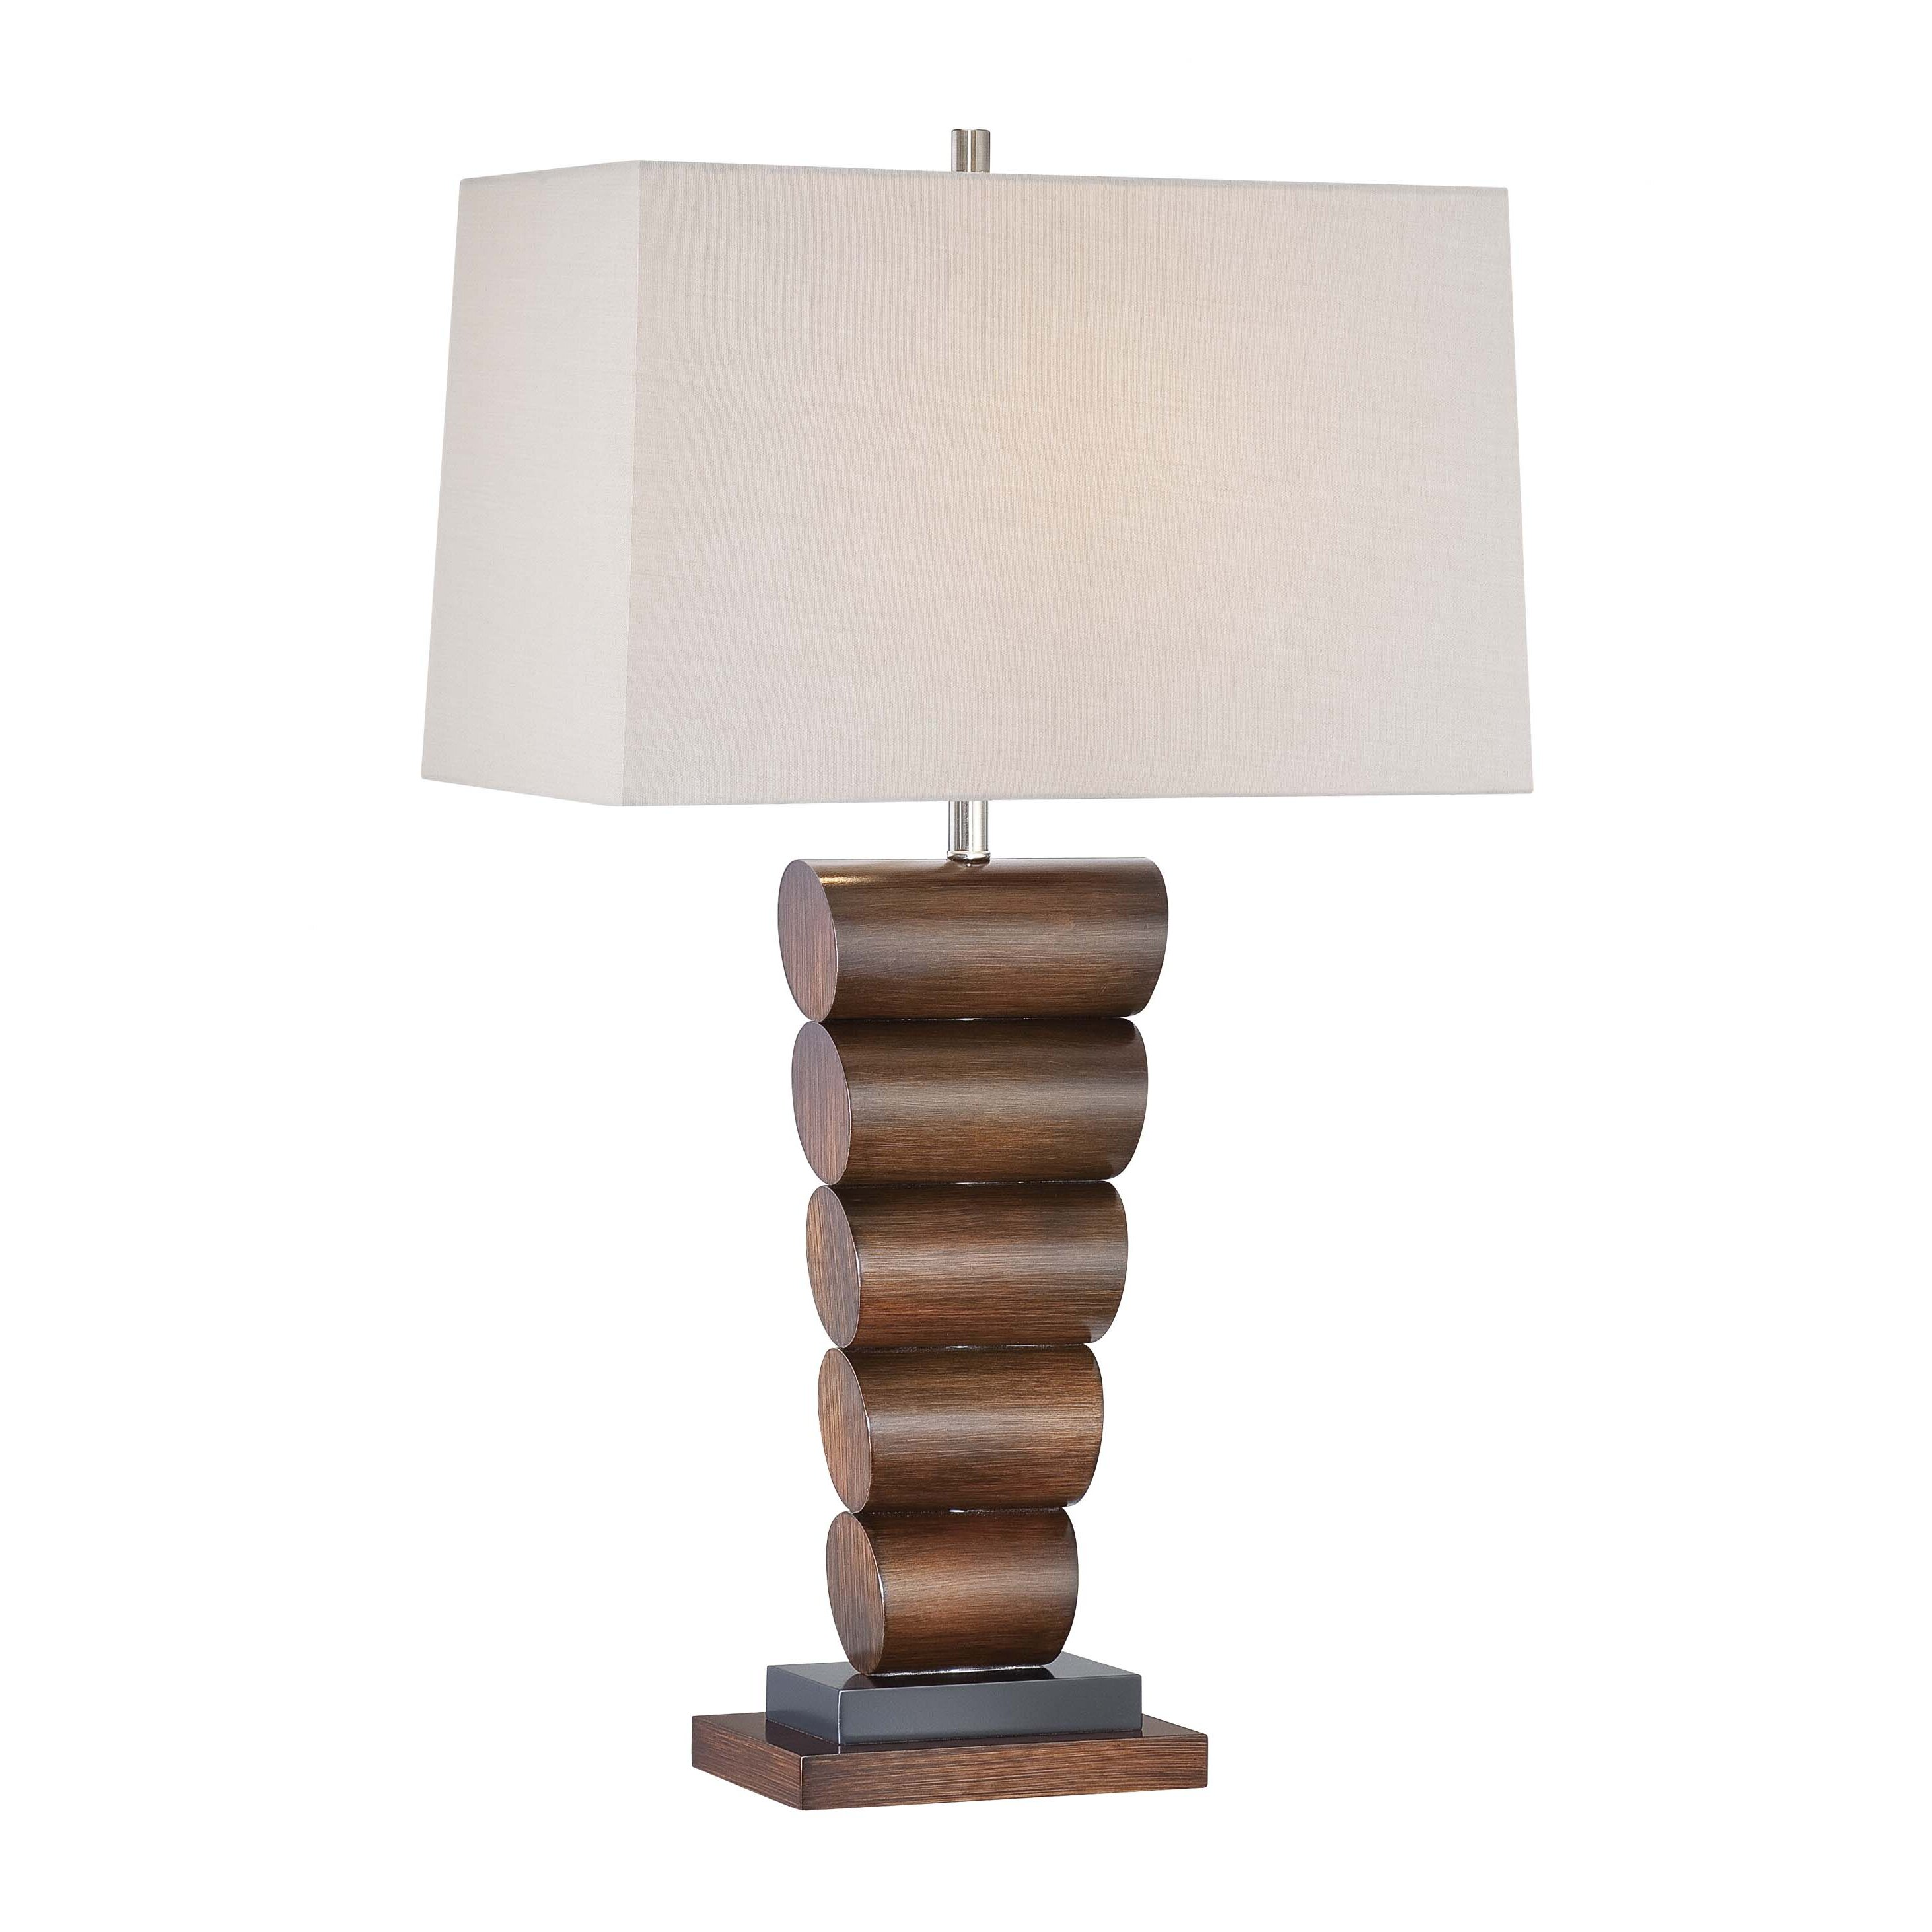 31 h table lamp with rectangular shade by minka lavery. Black Bedroom Furniture Sets. Home Design Ideas